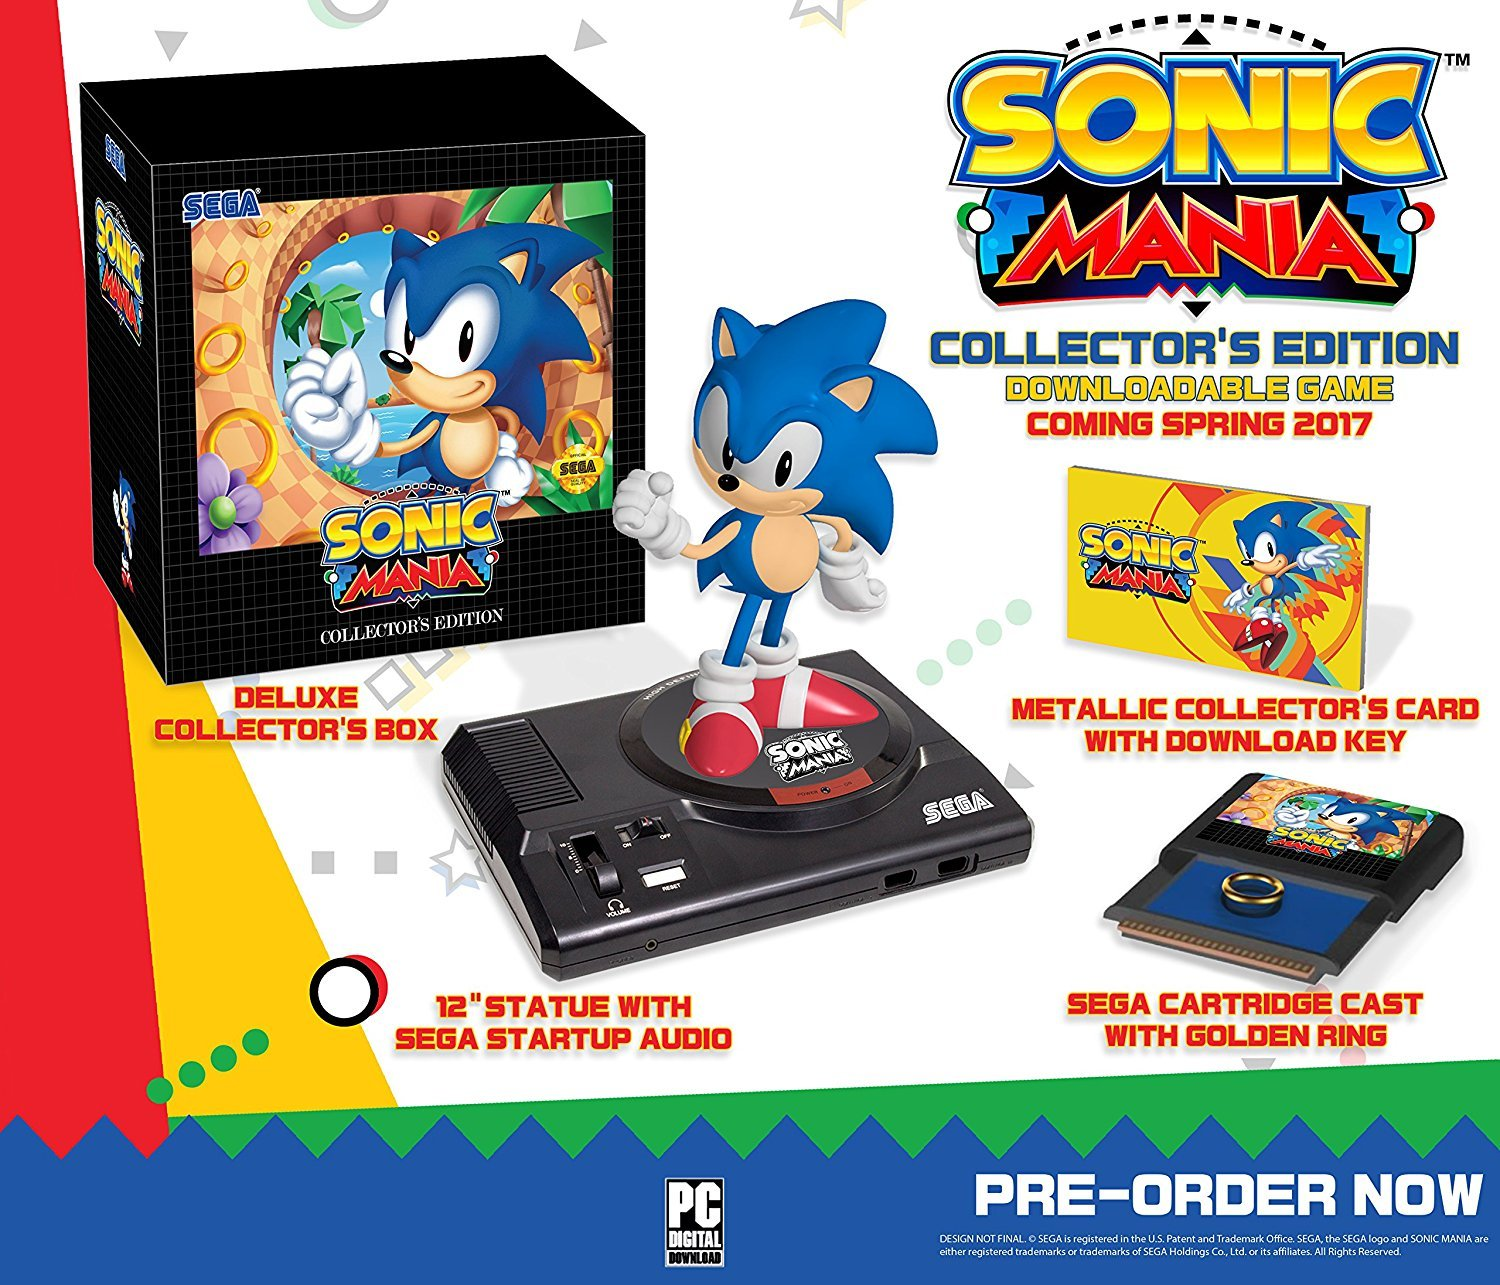 Sonic Mania: Collector's Edition - Nintendo Switch